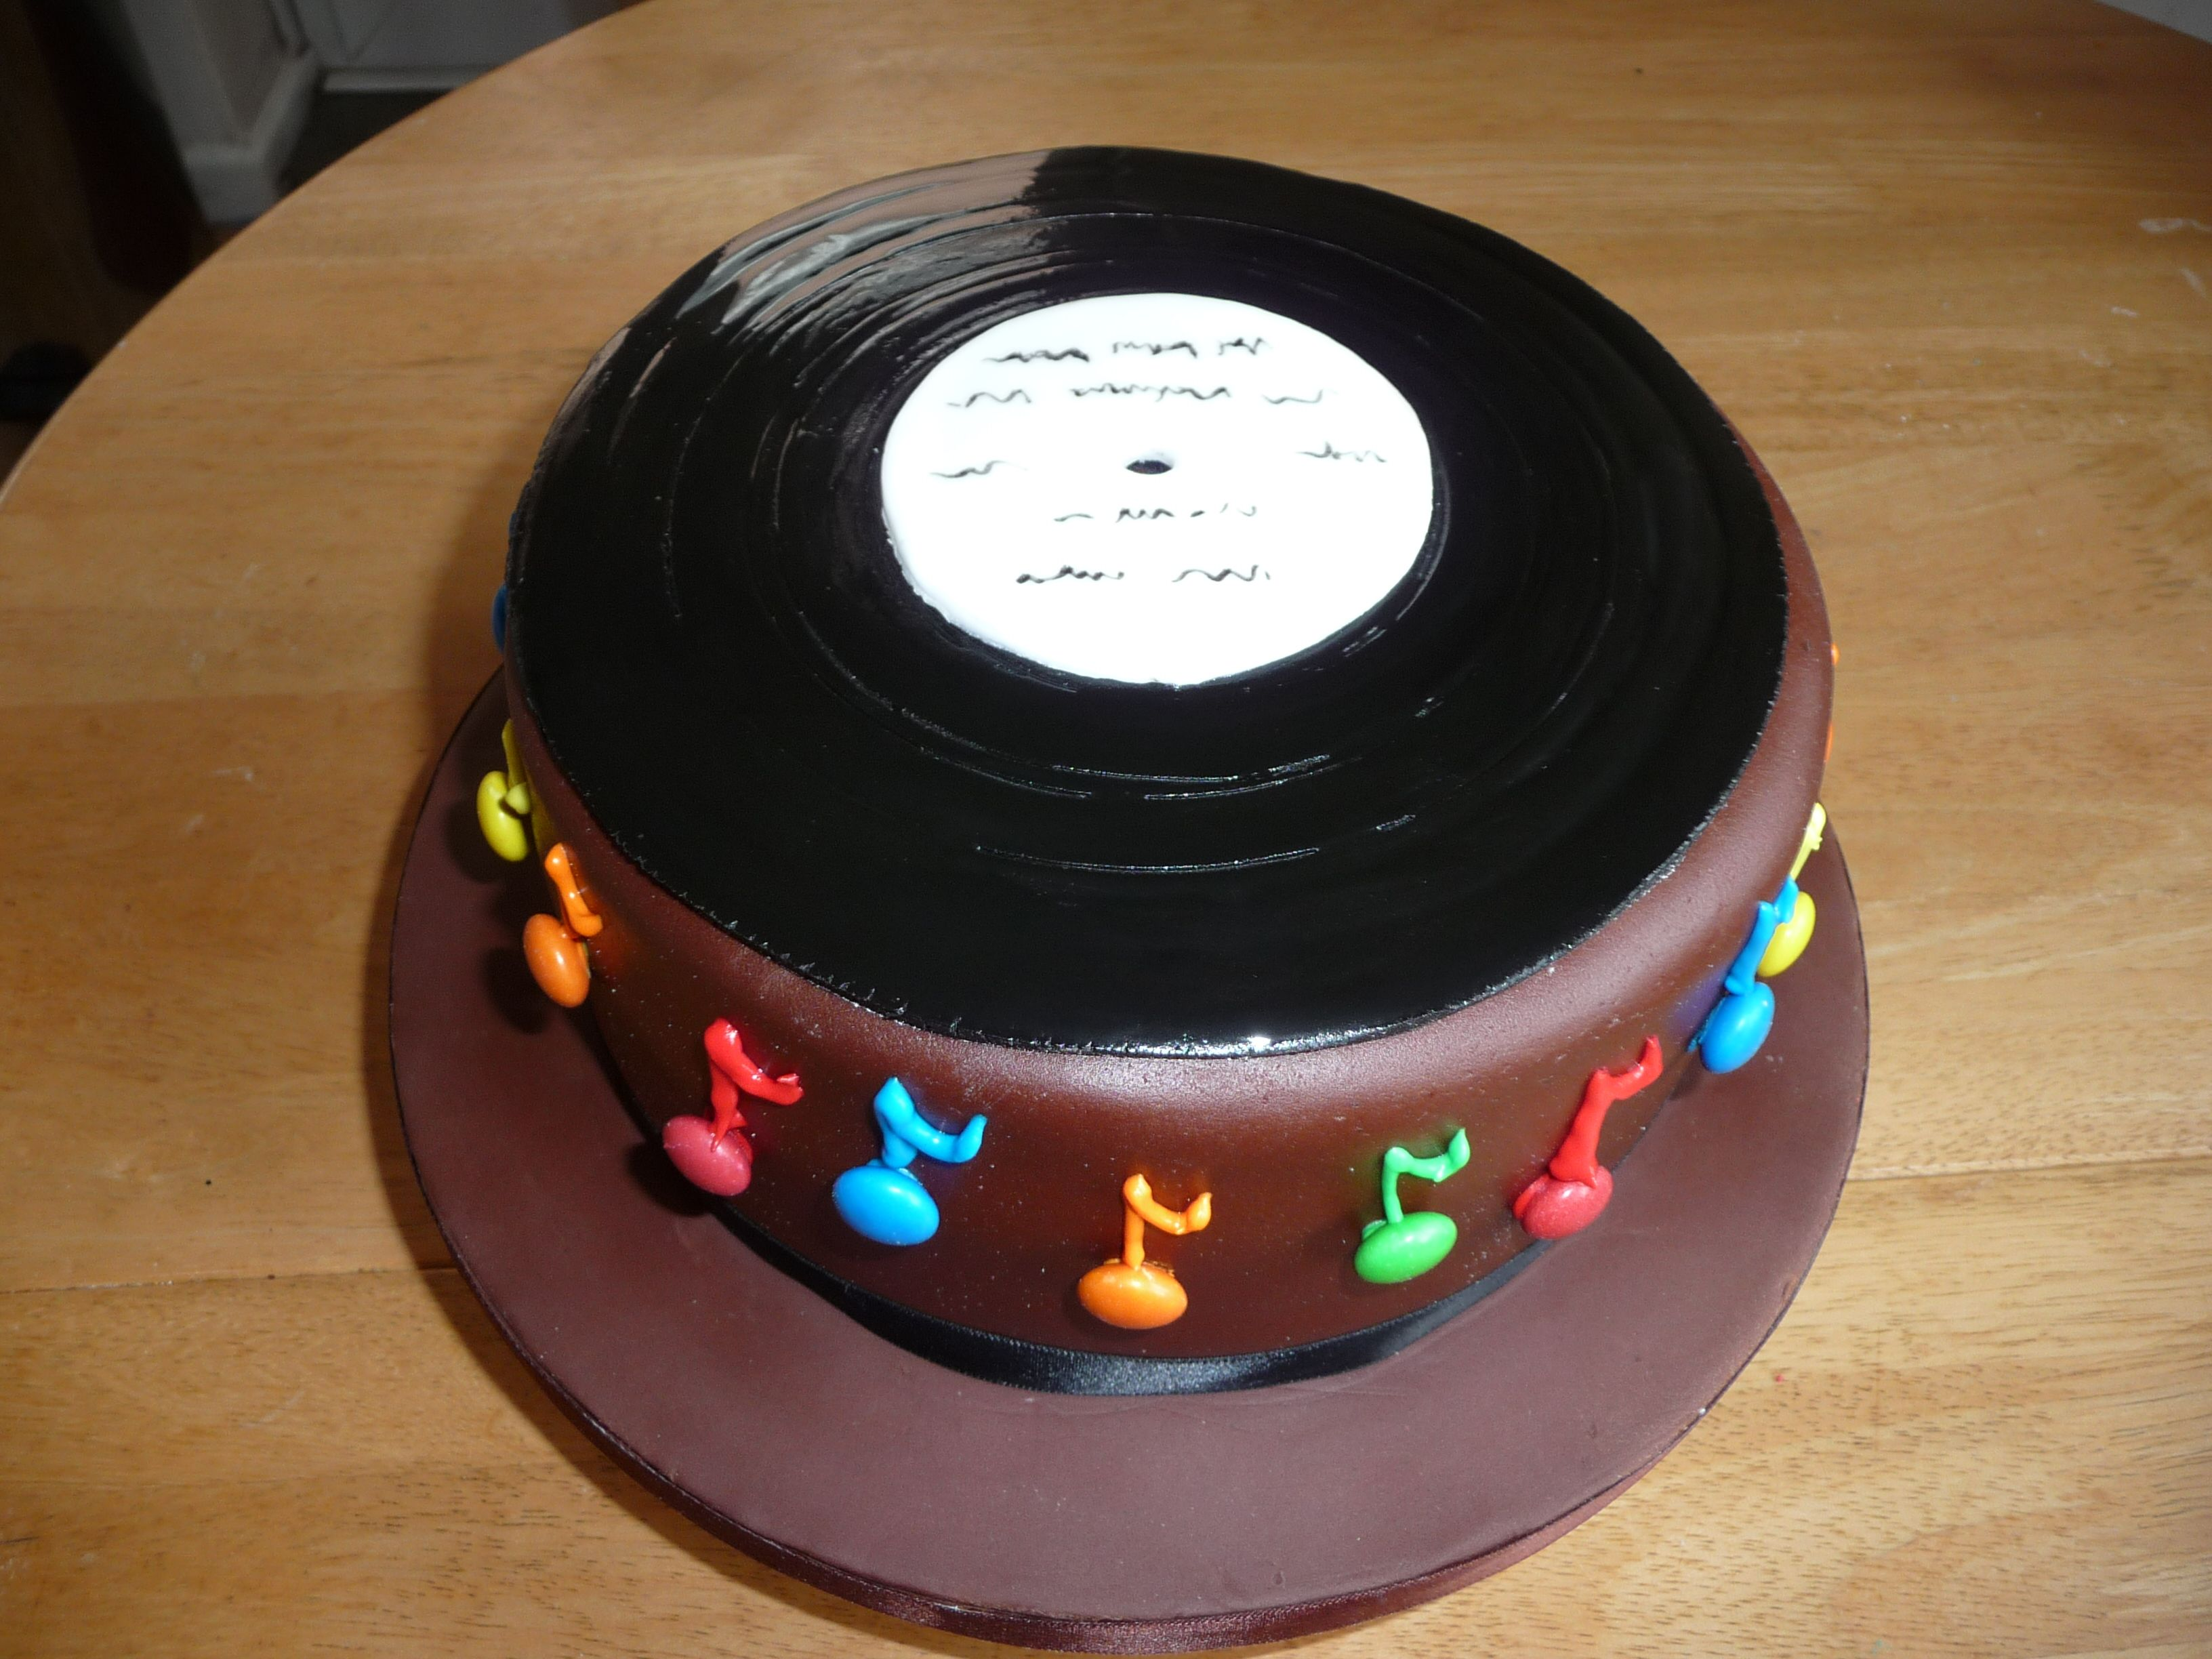 Image Of A Birthday Cake With Record For Dj